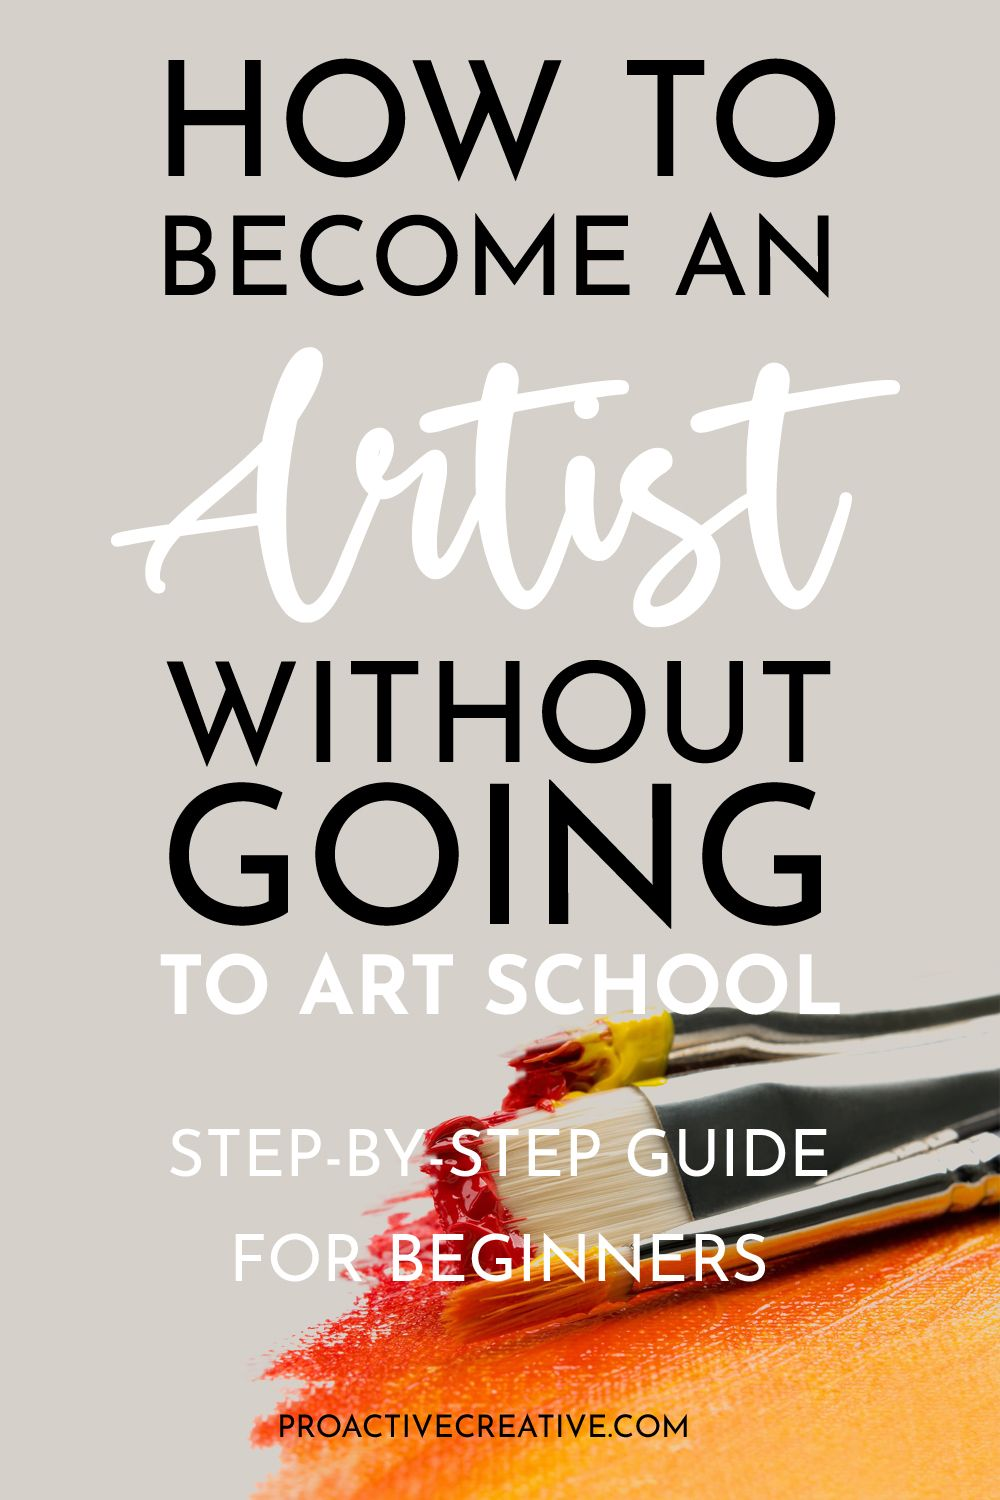 How to become an artist without a degree